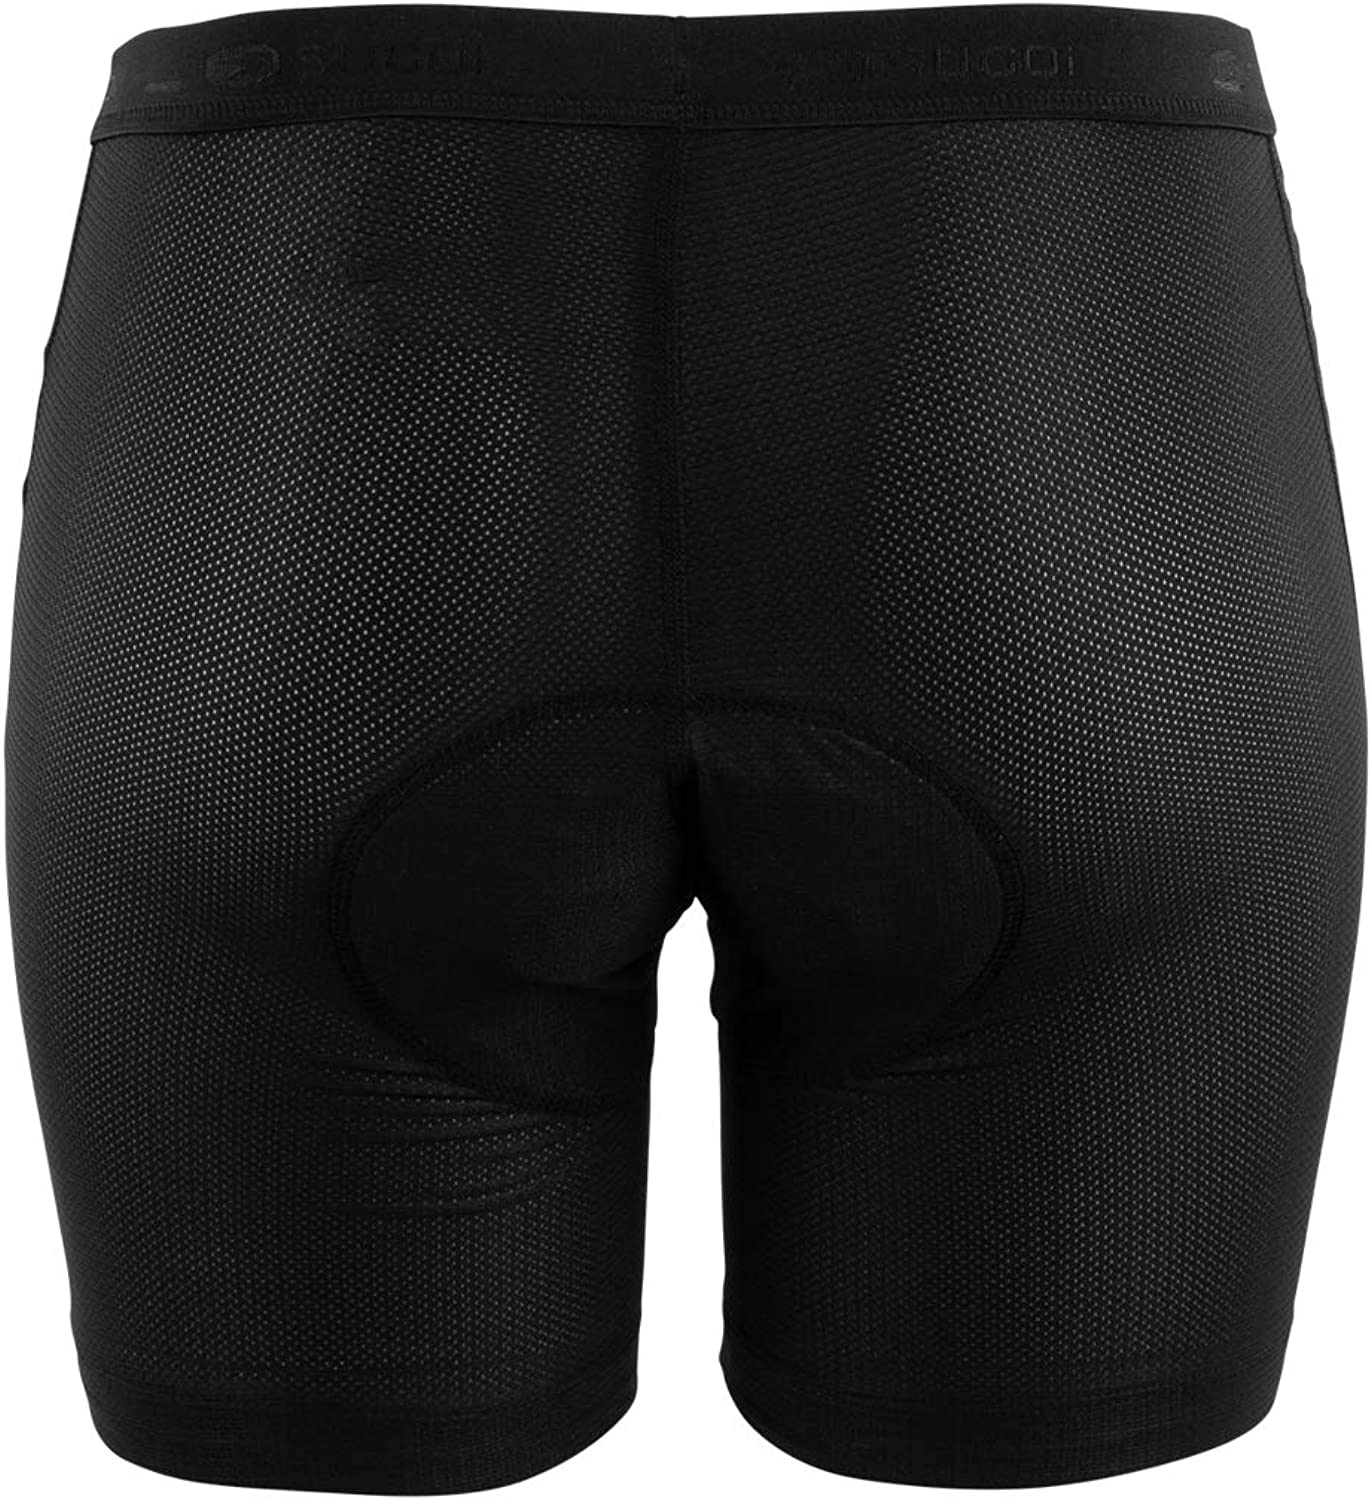 SUGOi Womens RC Pro Liner